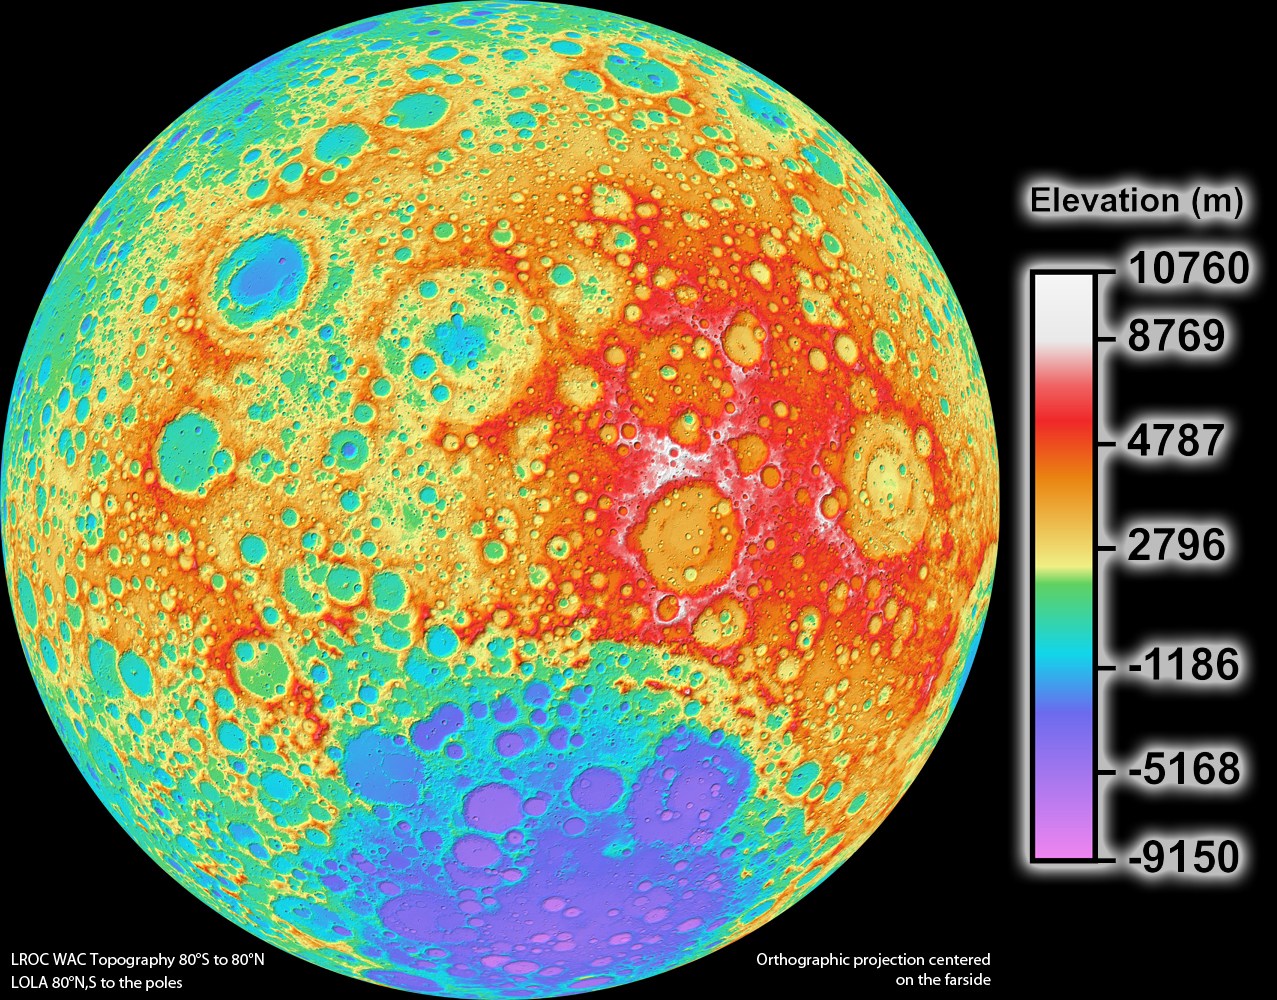 A New Map of the Moon | NASA